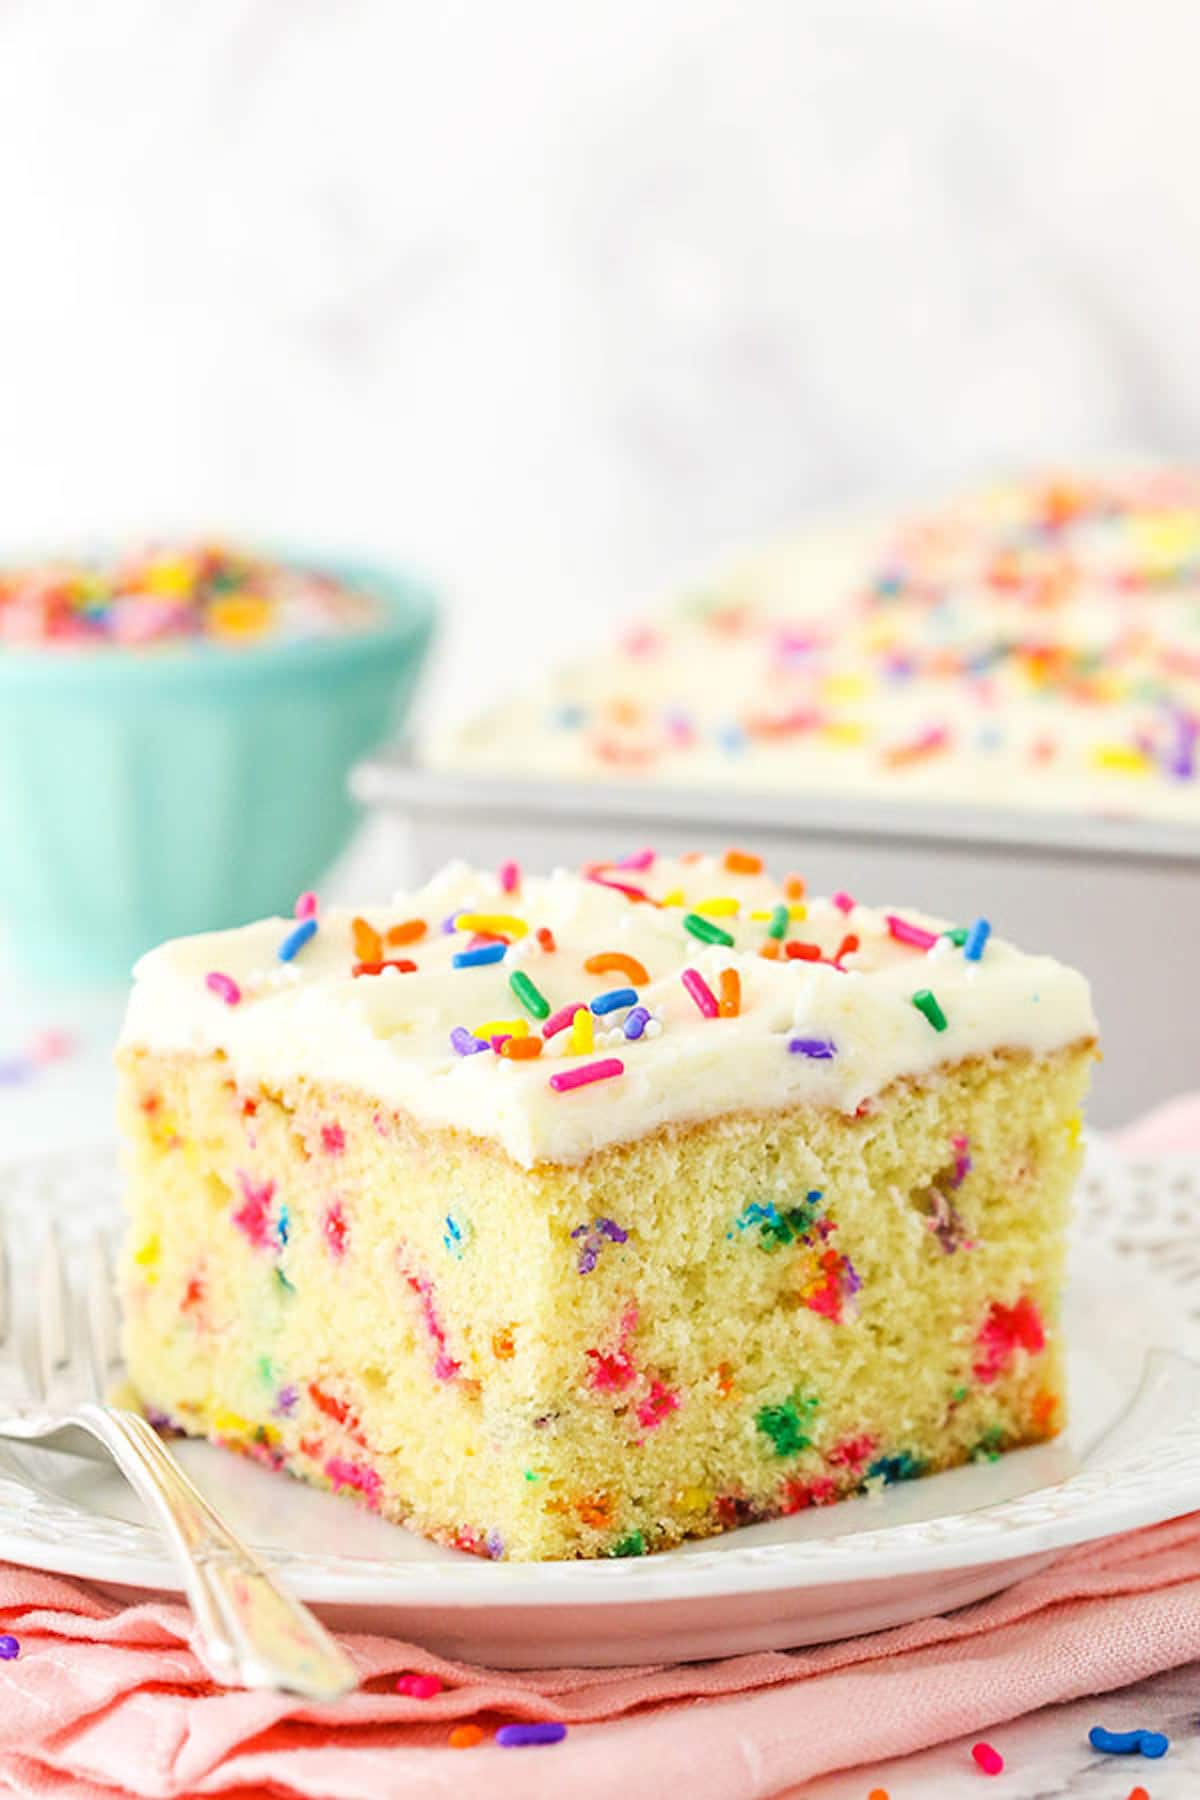 A Piece of Funfetti Cake on a Plate with the Rest of the Cake in the Background